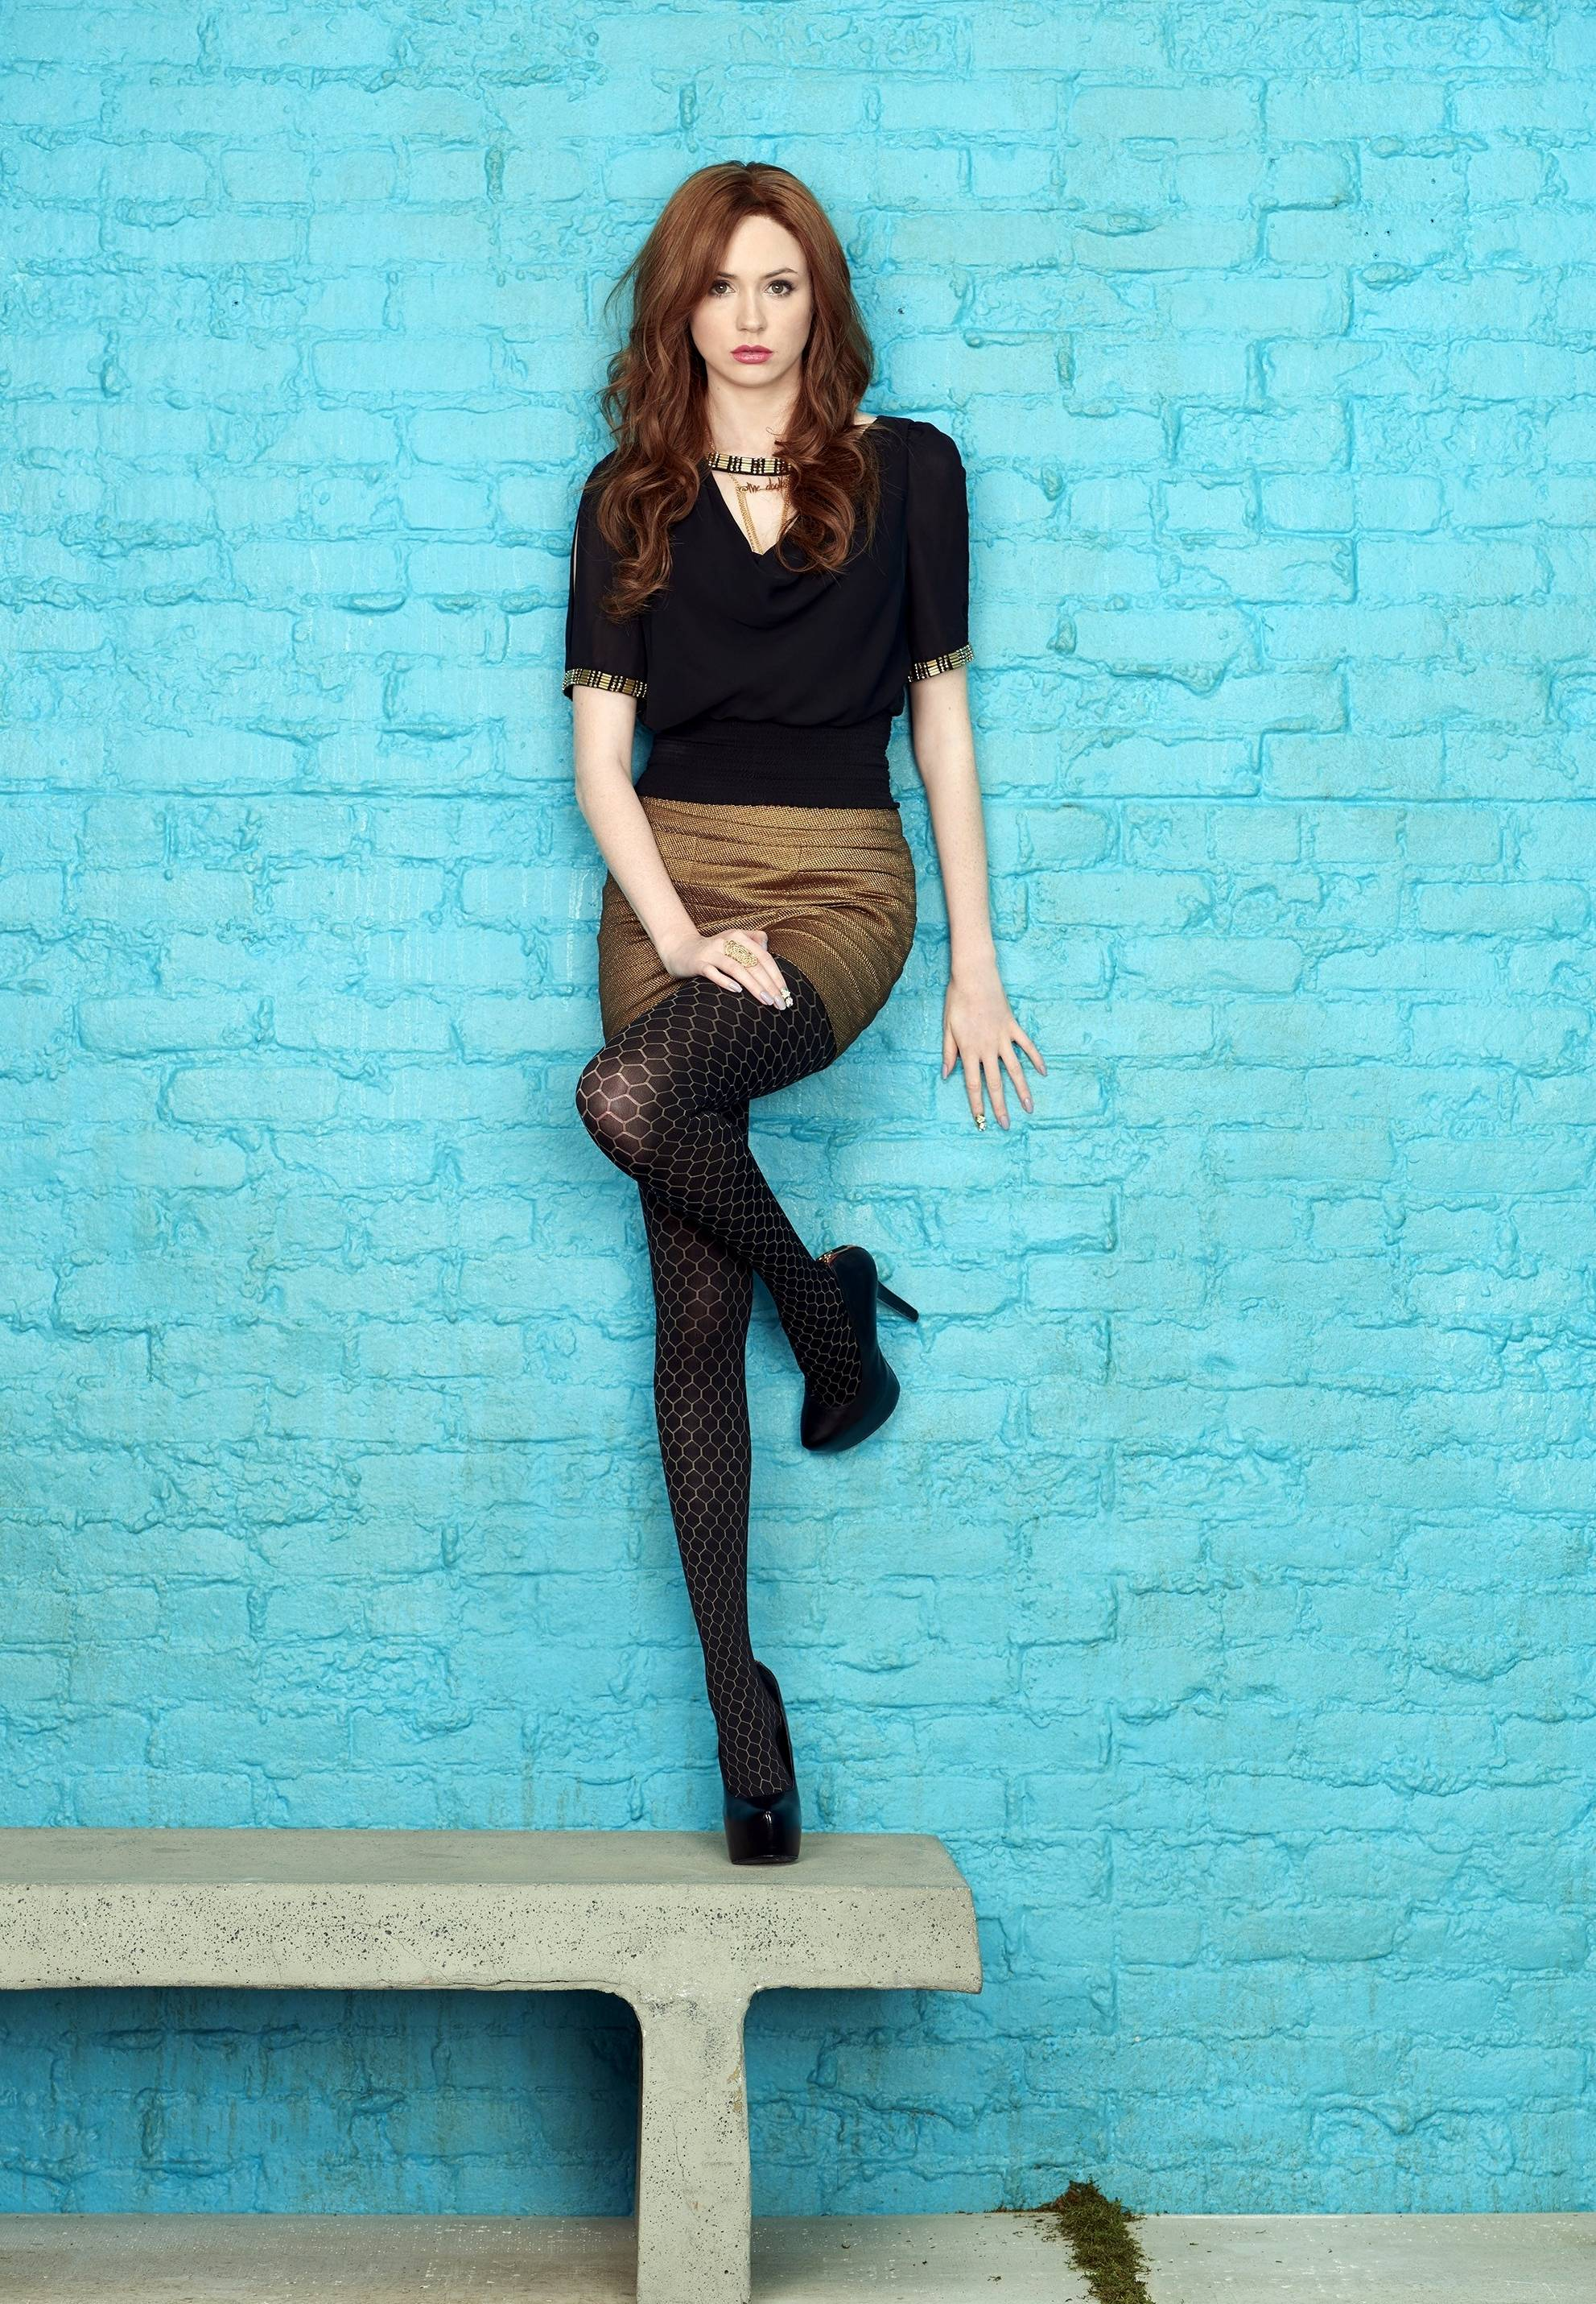 Karen Gillan For mobile